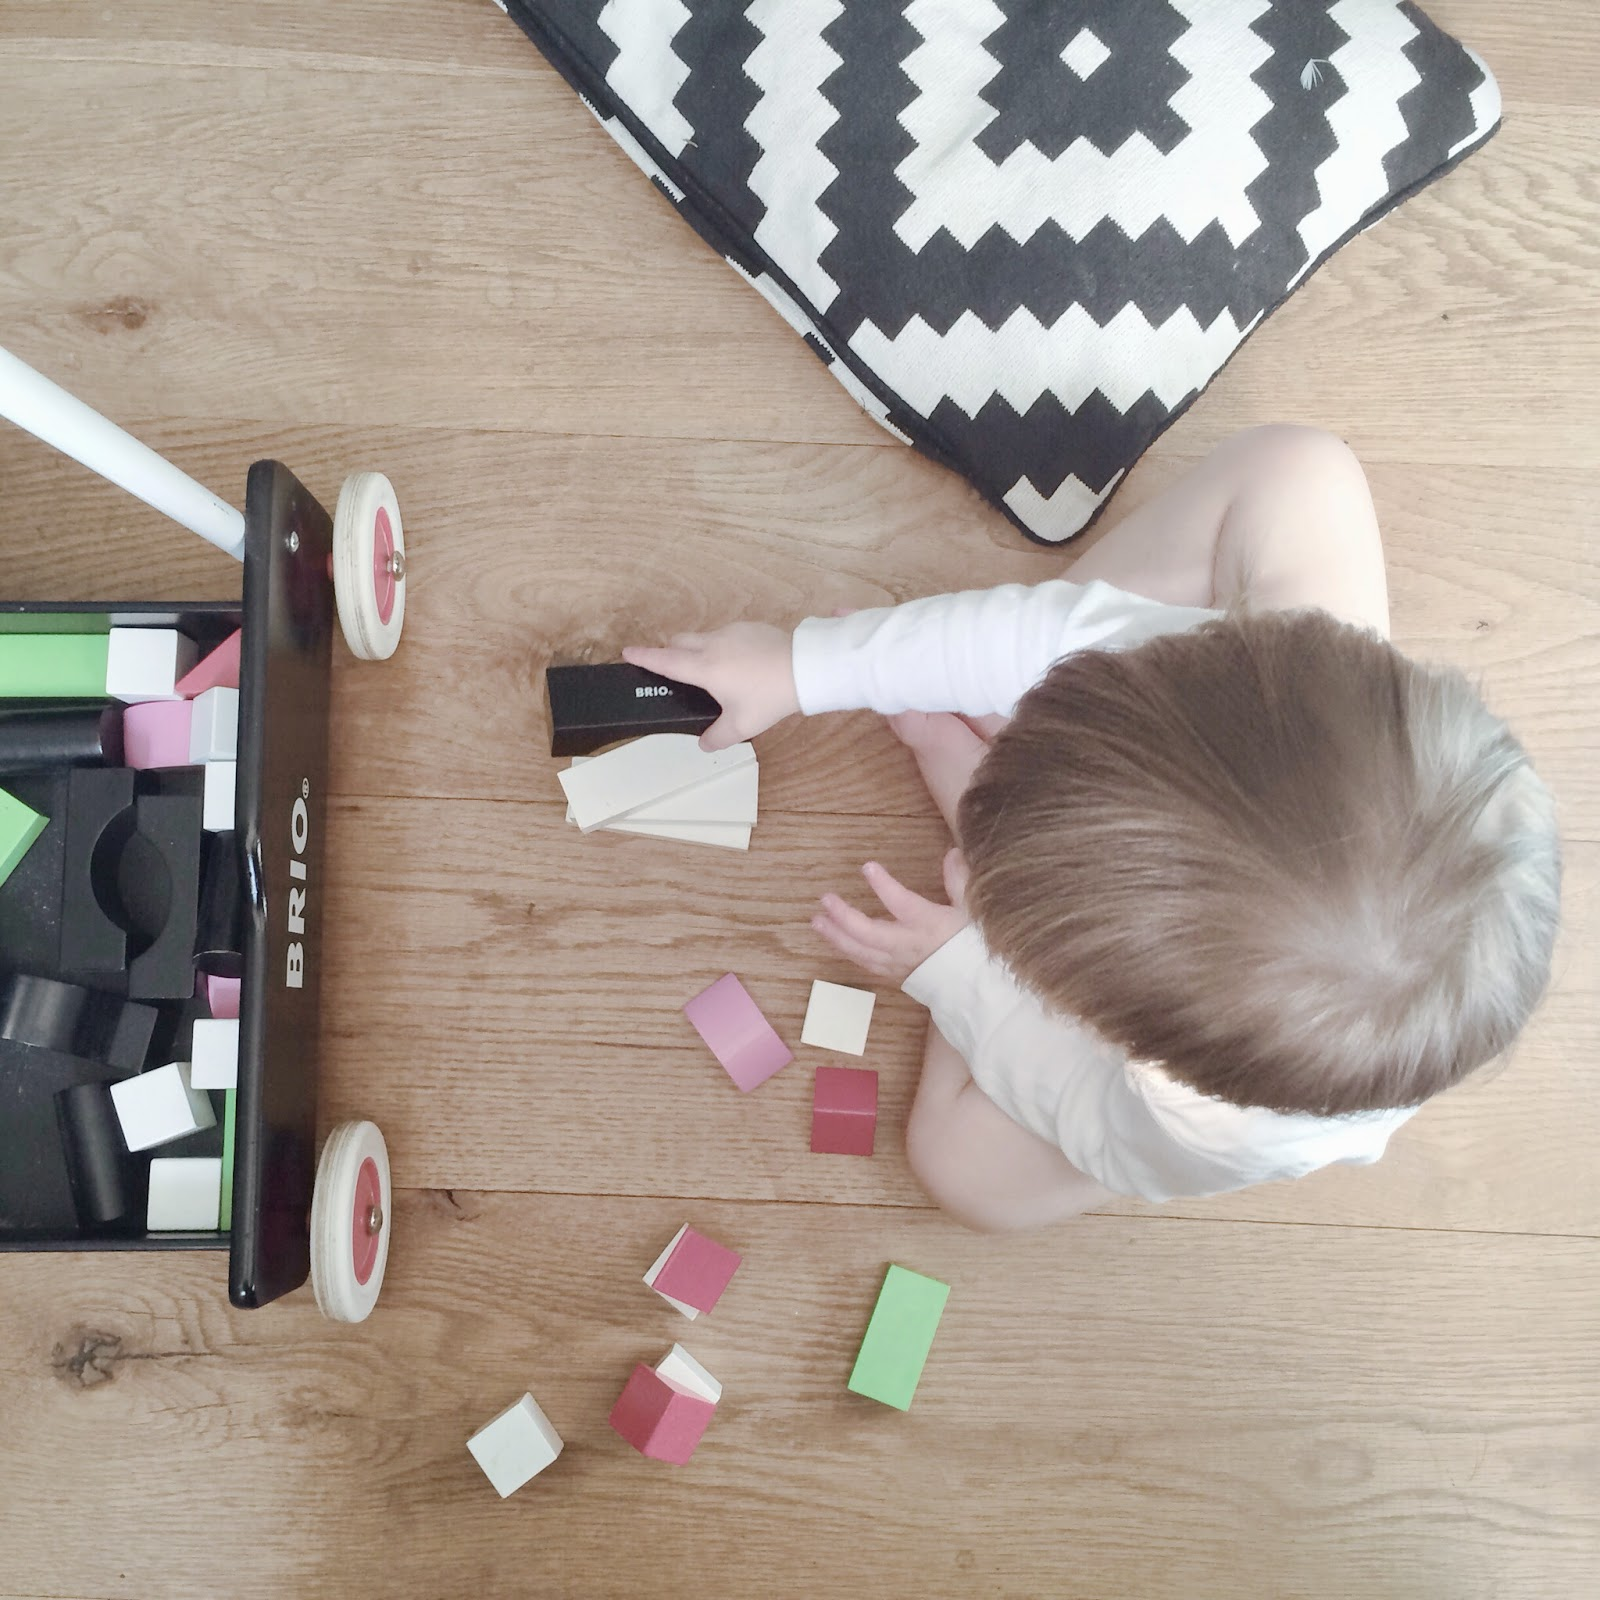 Ayden playing with his favourite Brio blocks